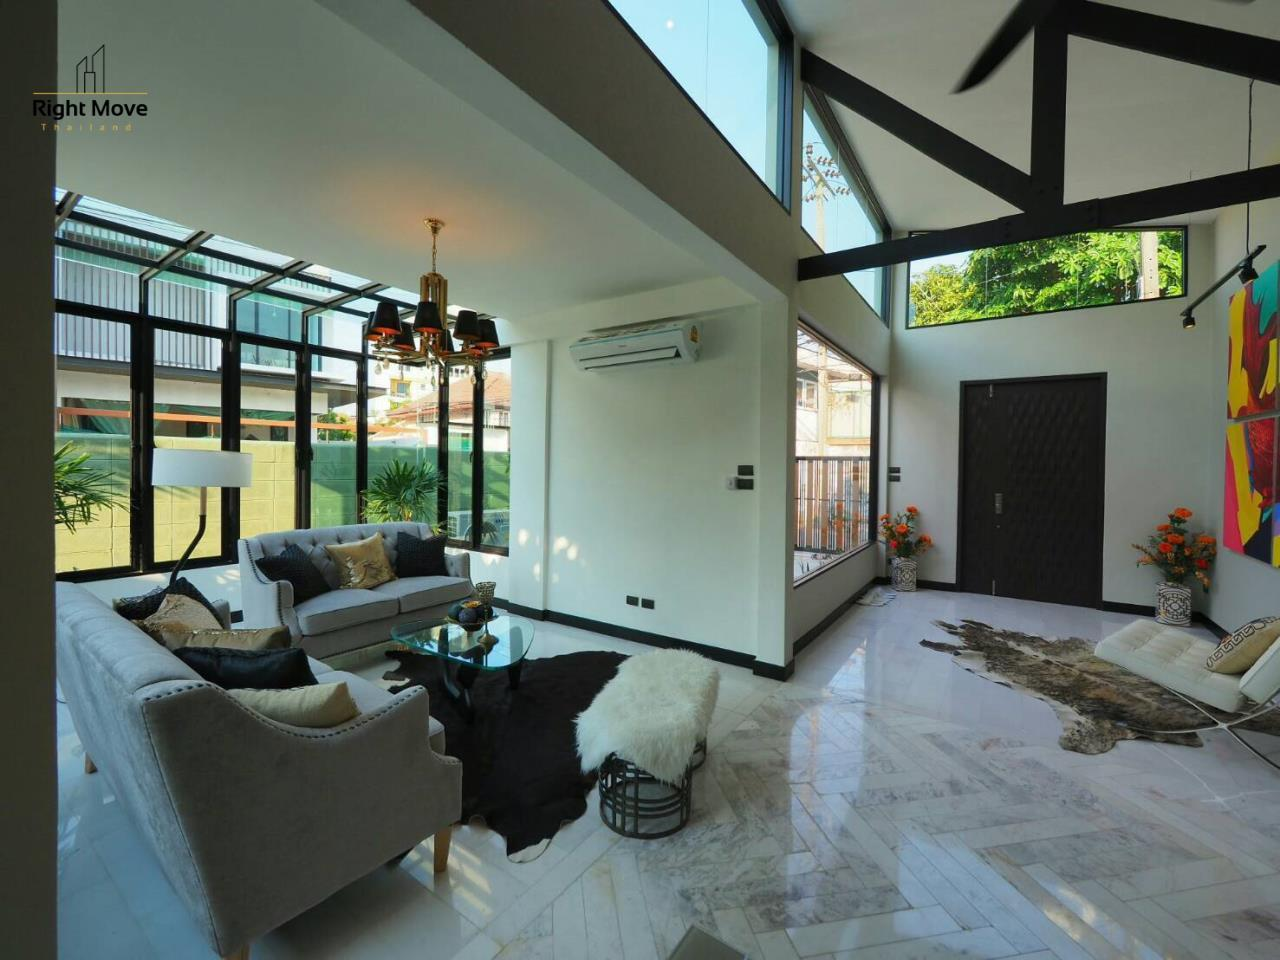 Right Move Thailand Agency's HR874 Single House For Sale 16,500,000 THB 2 Bedrooms 150 Sqm 5